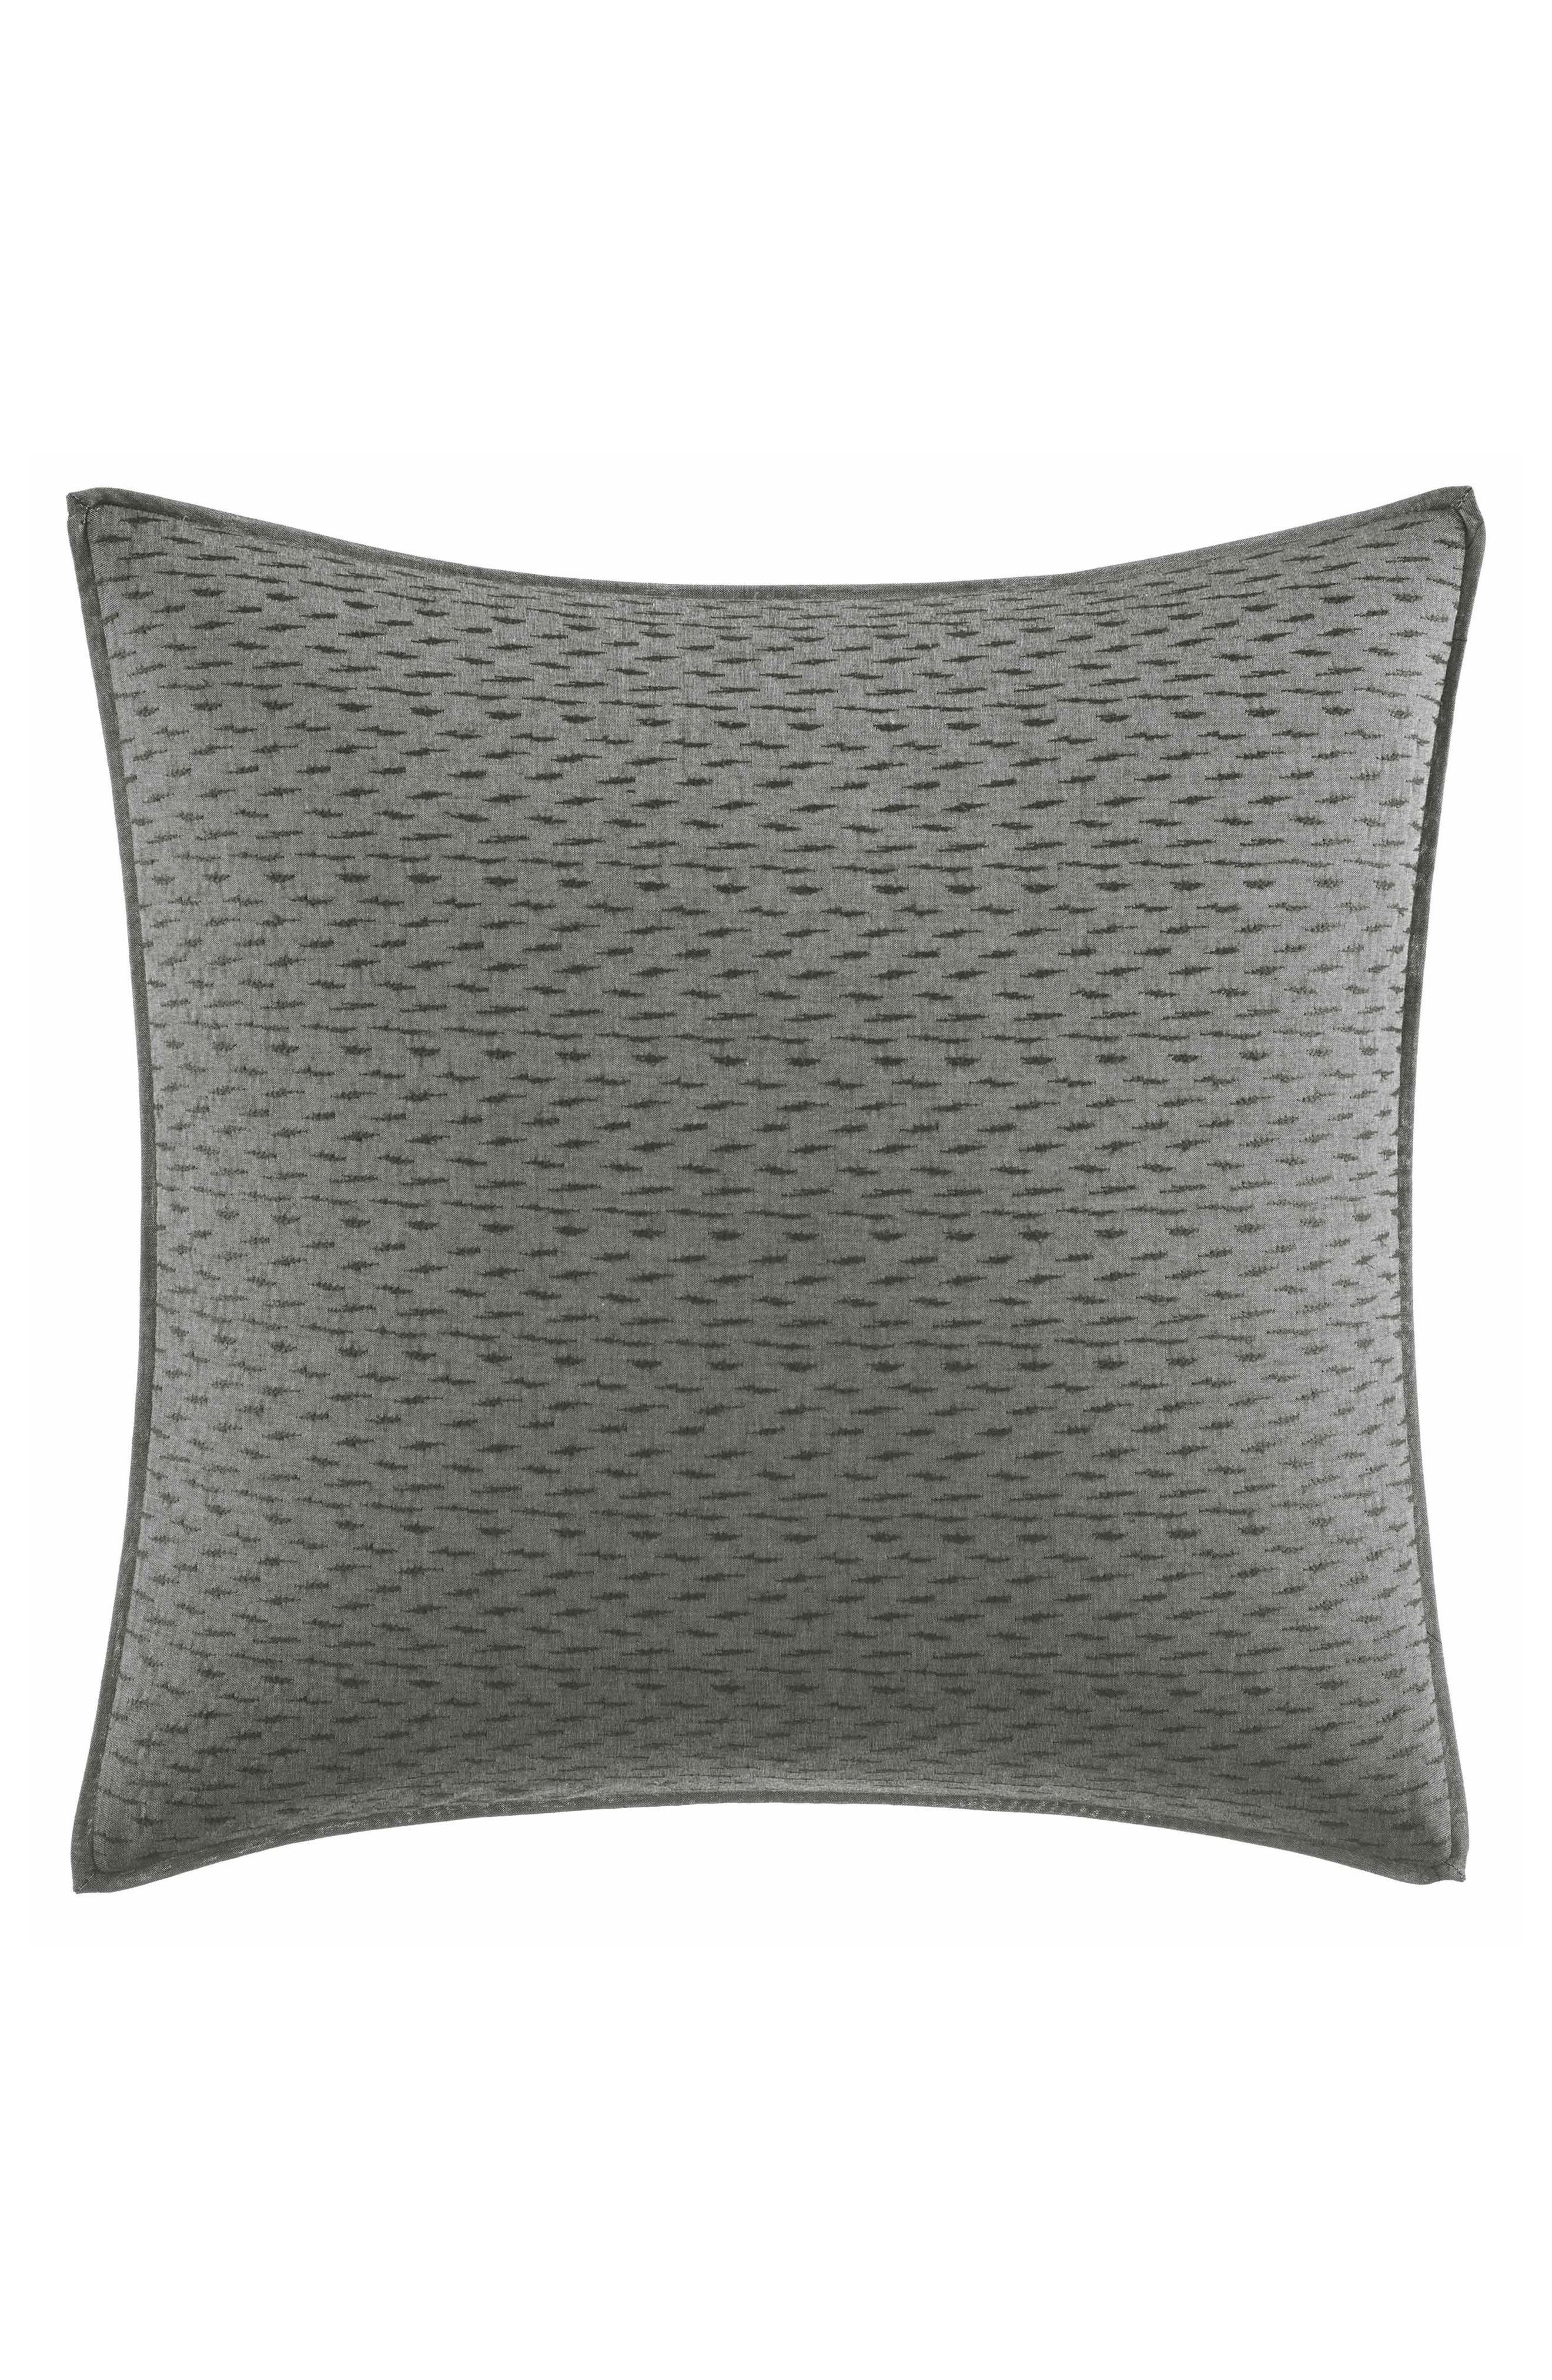 Charcoal Floral Accent Pillow,                             Main thumbnail 1, color,                             Charcoal